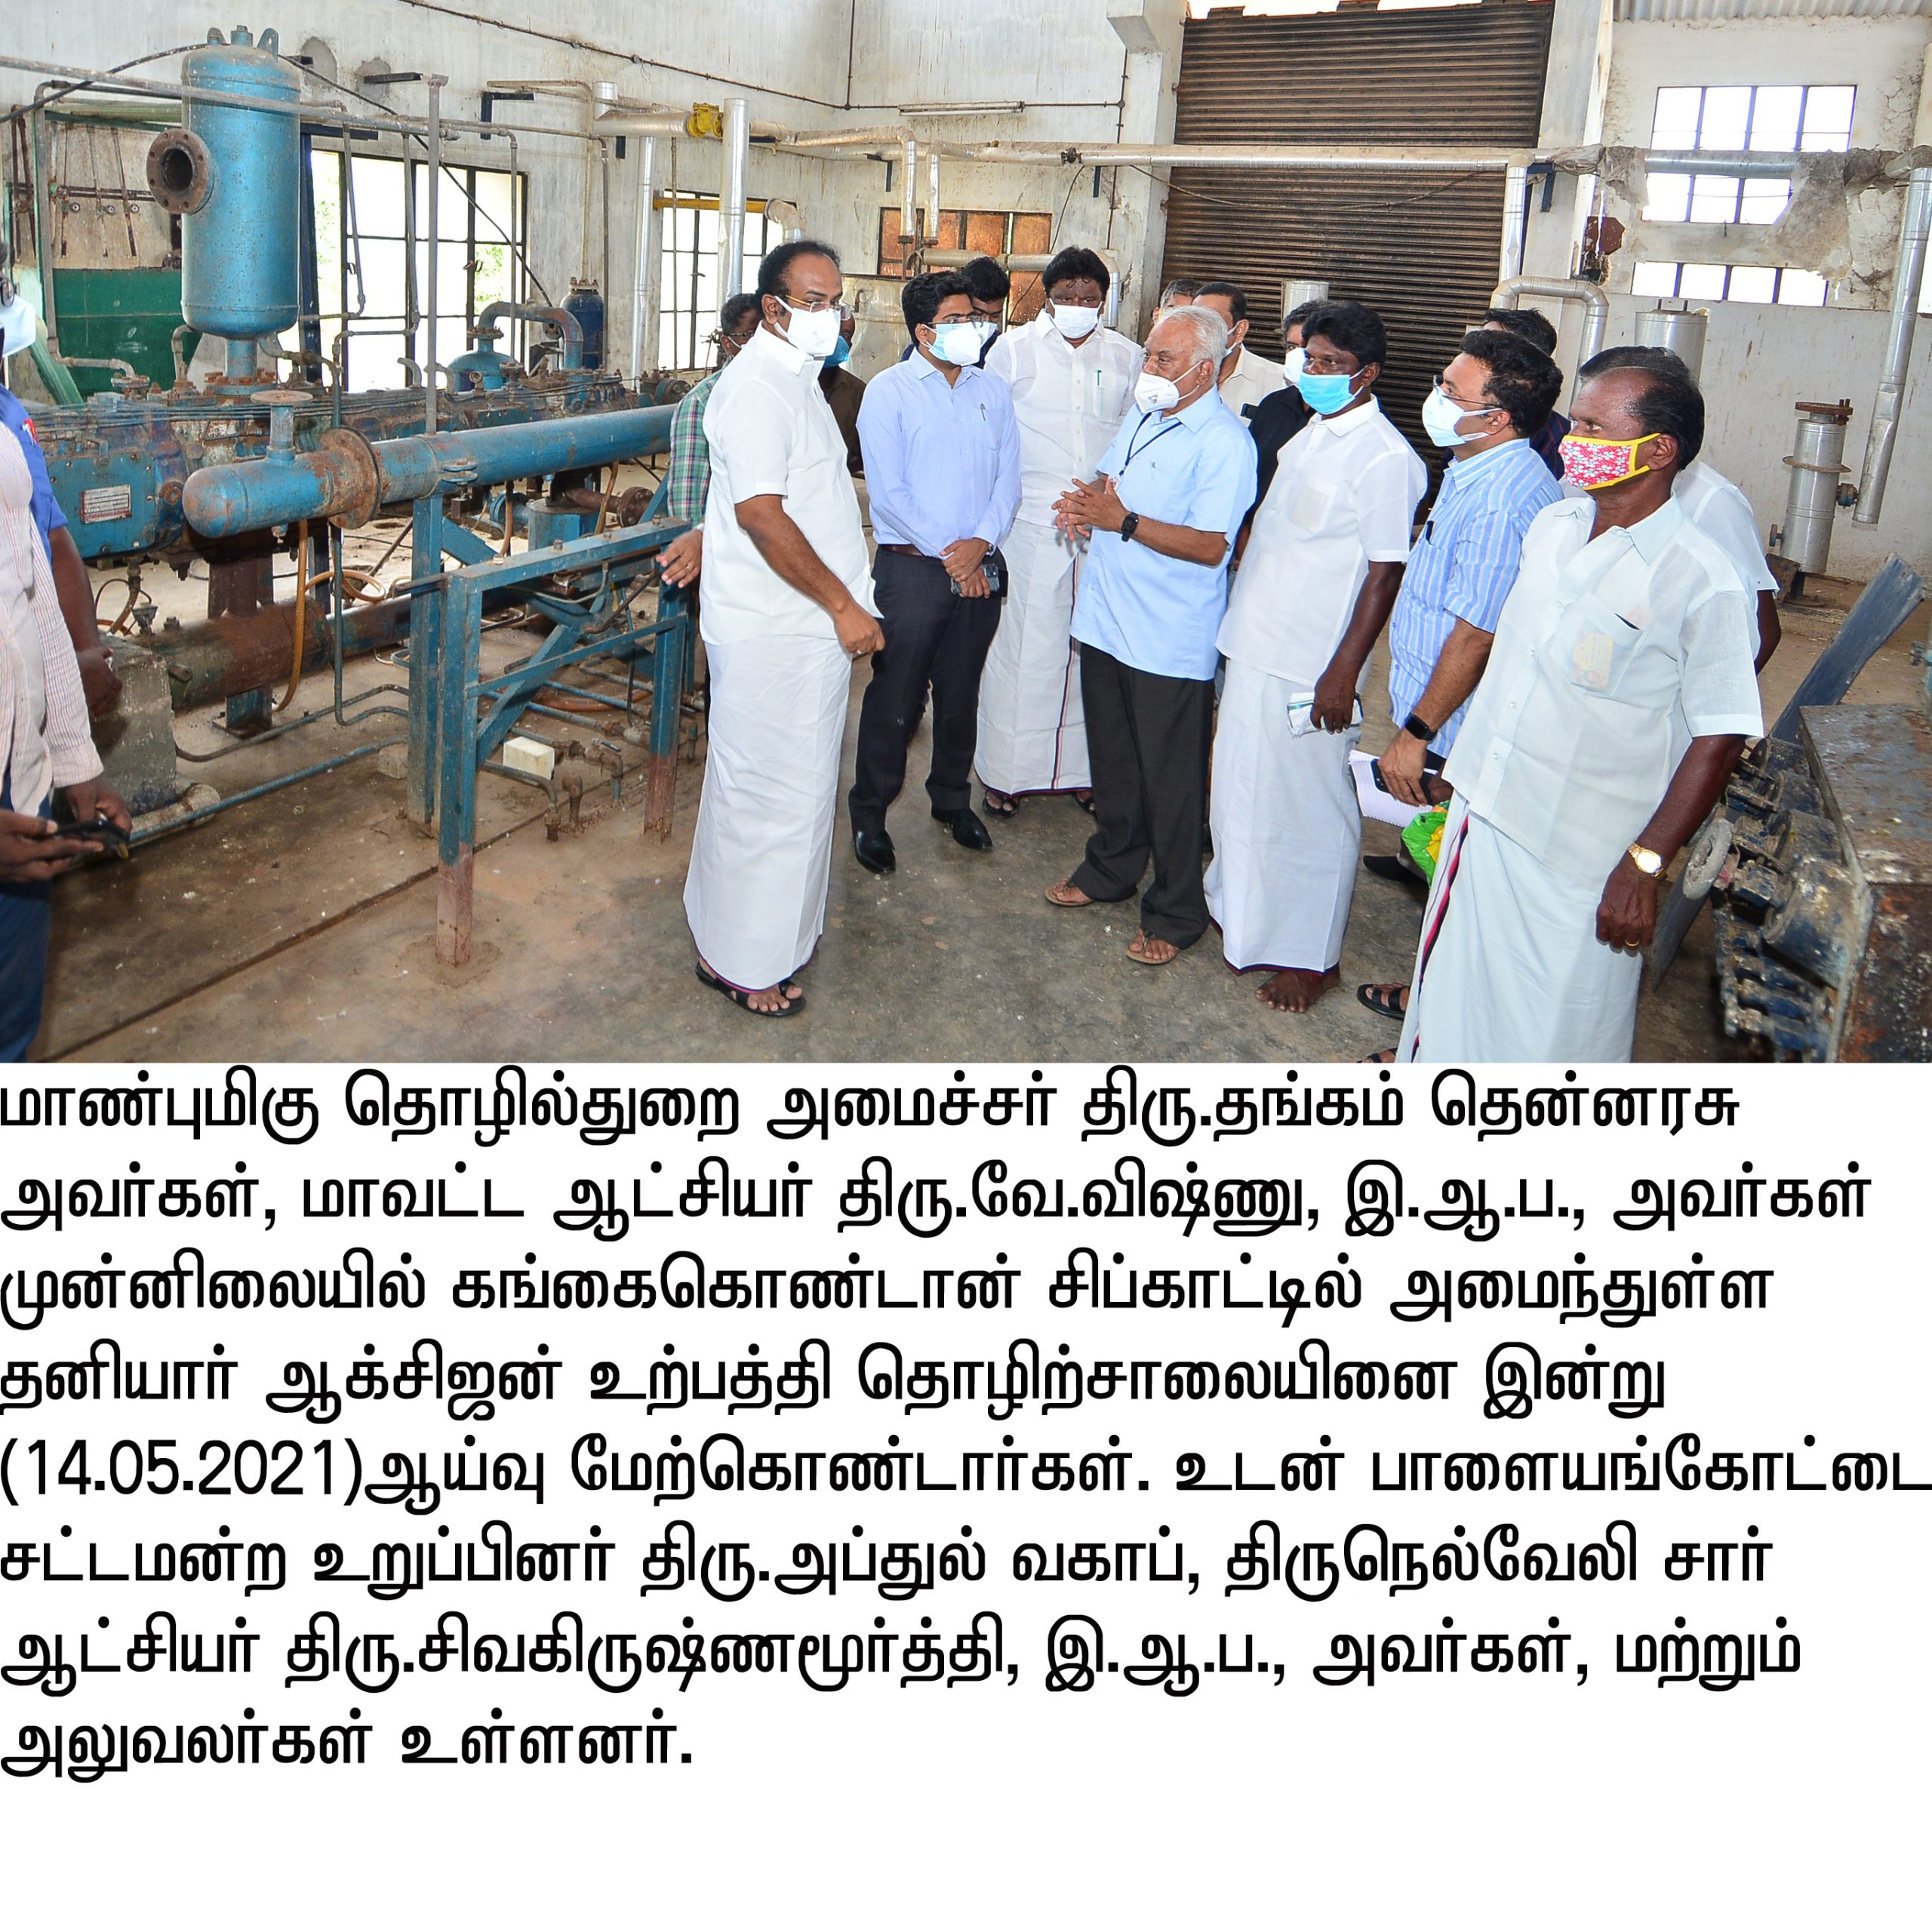 Inspection at Gandhimathiamman Corona Testing Centre and Private Oxygen Production Factory located at SIPCOT Gangaikondan 2